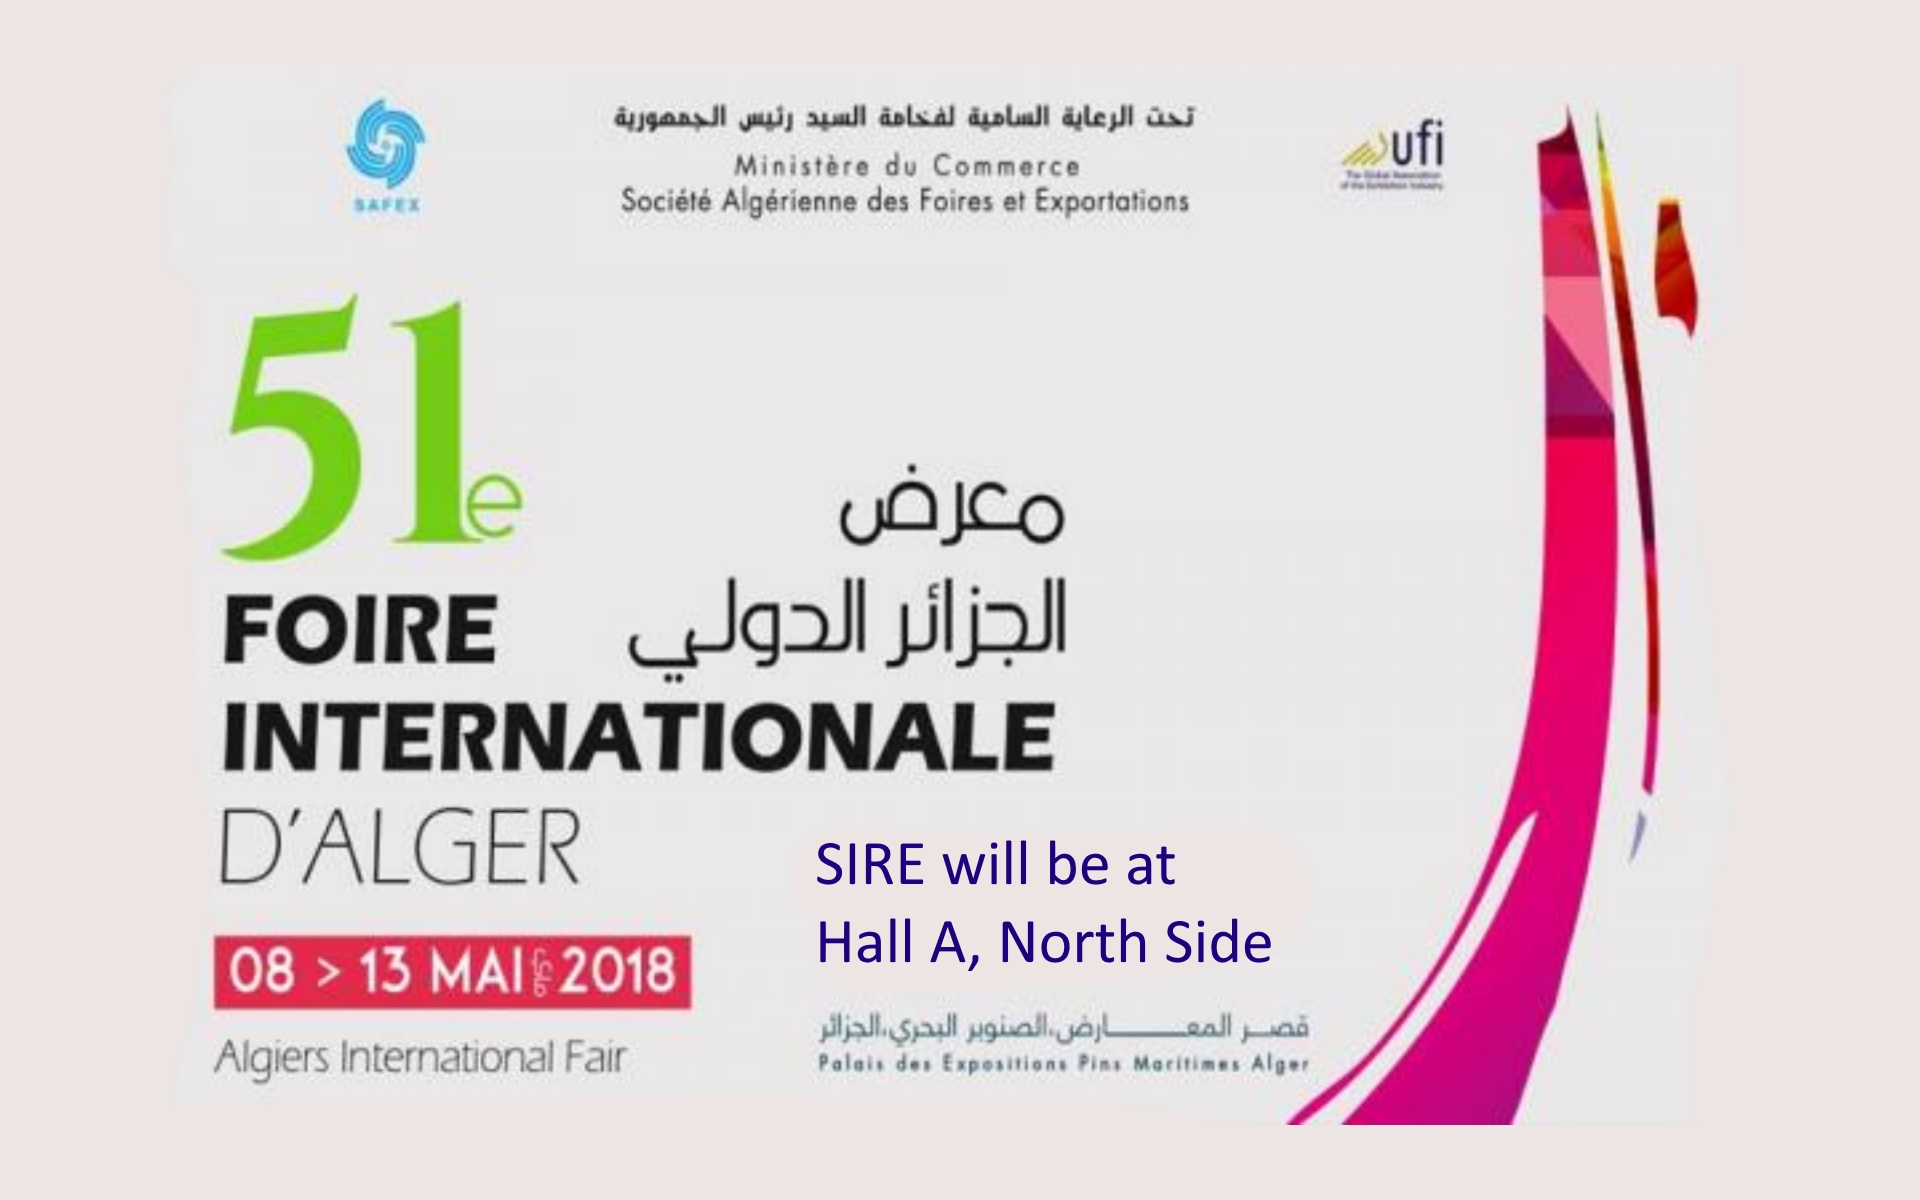 MEET US @ La Foire Internationale d'Alger